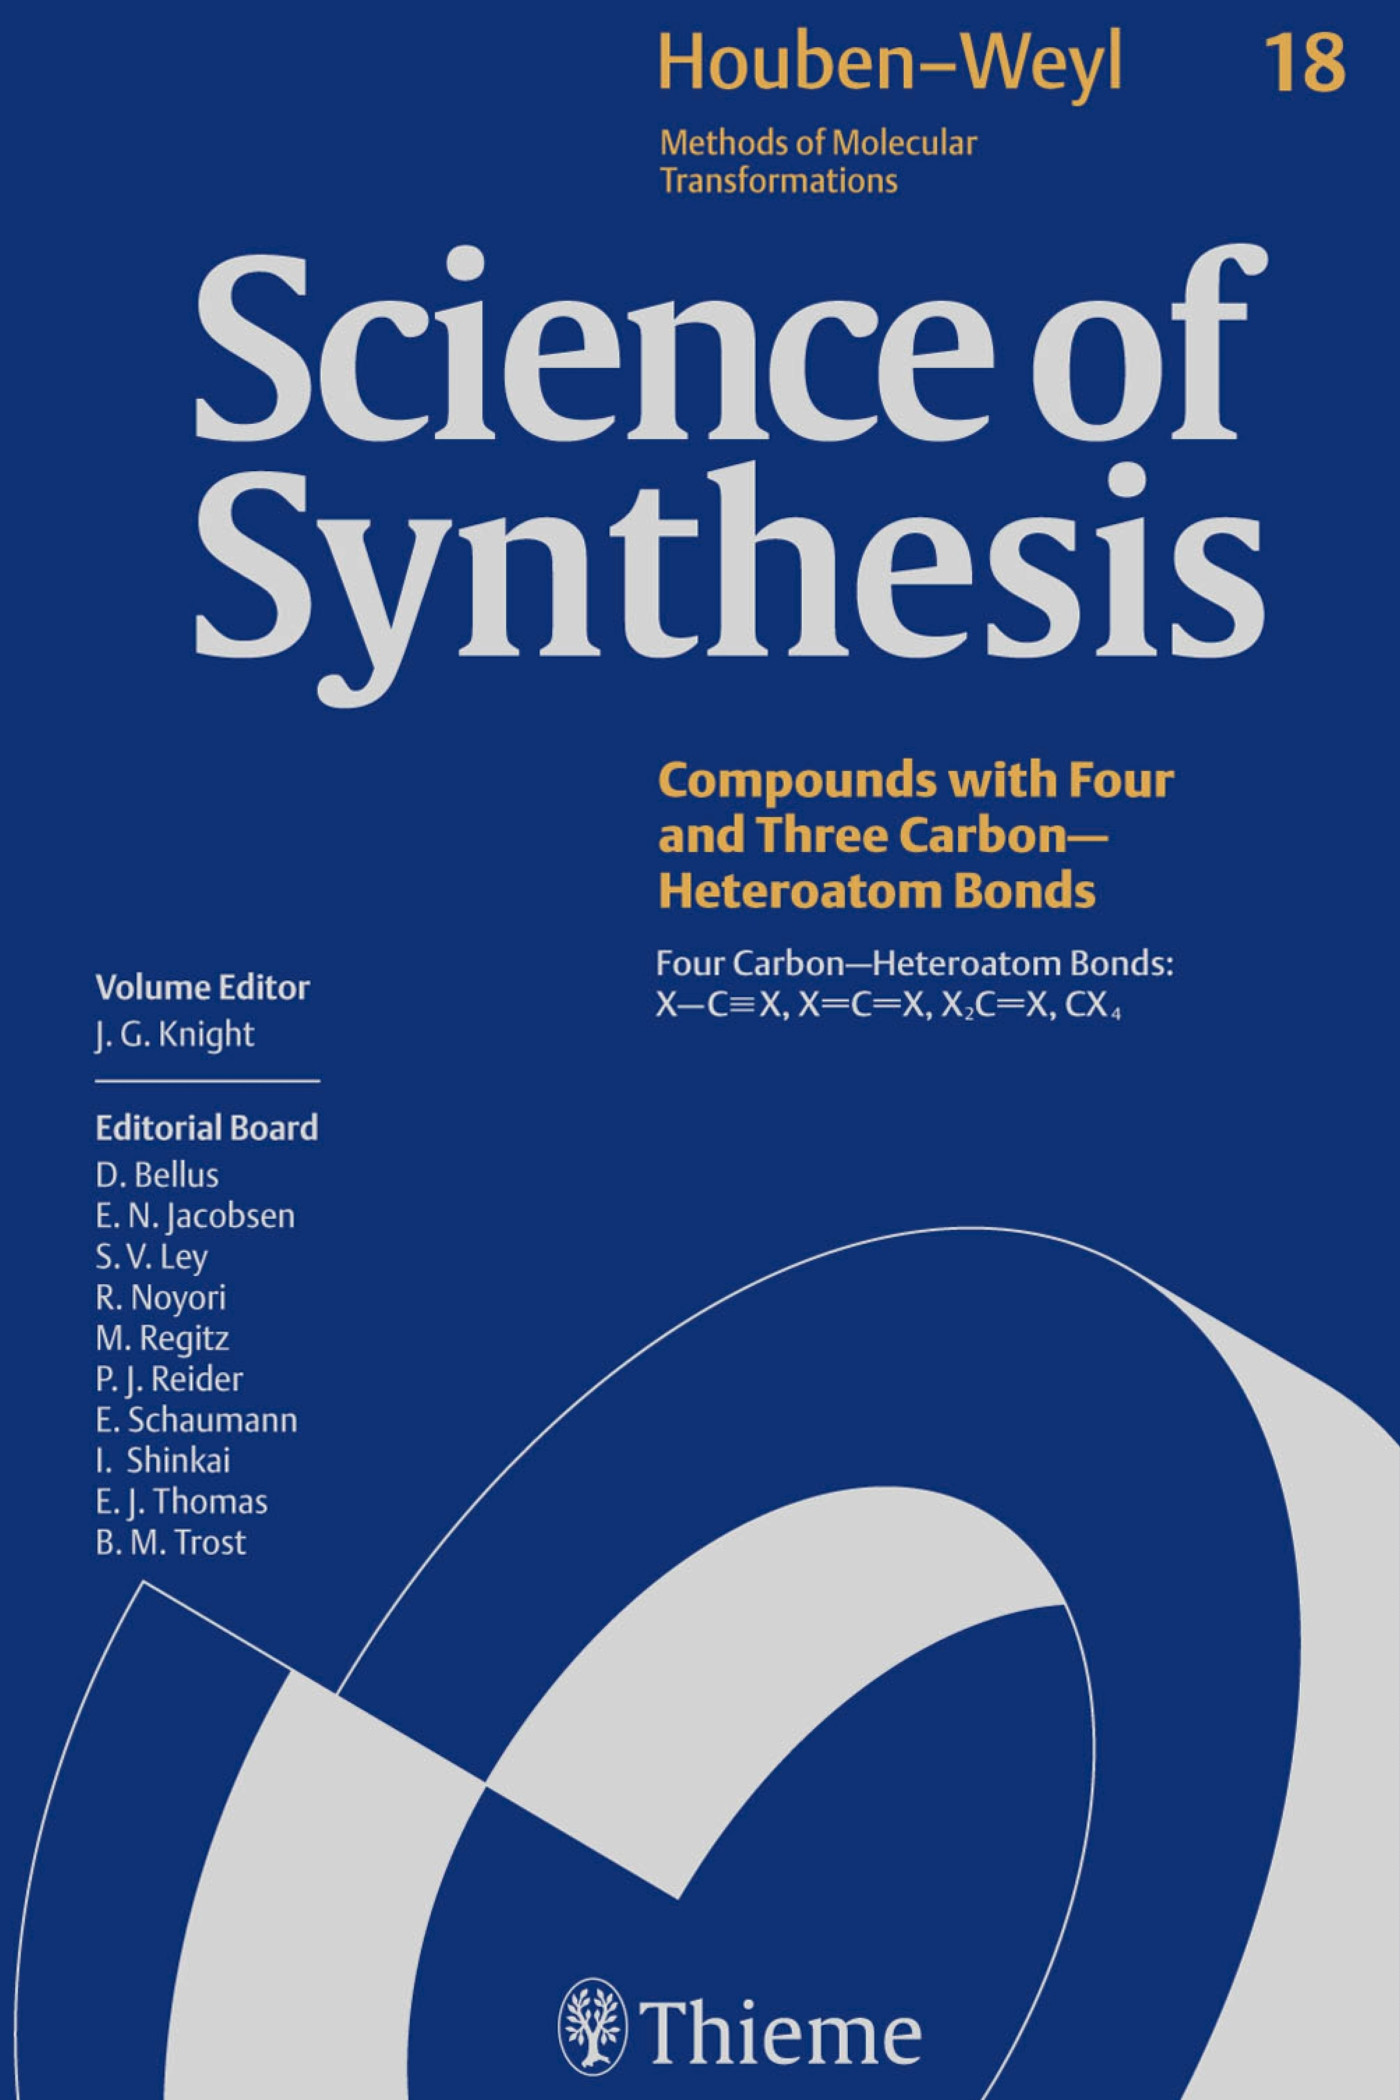 Science of Synthesis: Houben-Weyl Methods of Molecular Transformations  Vol. 18